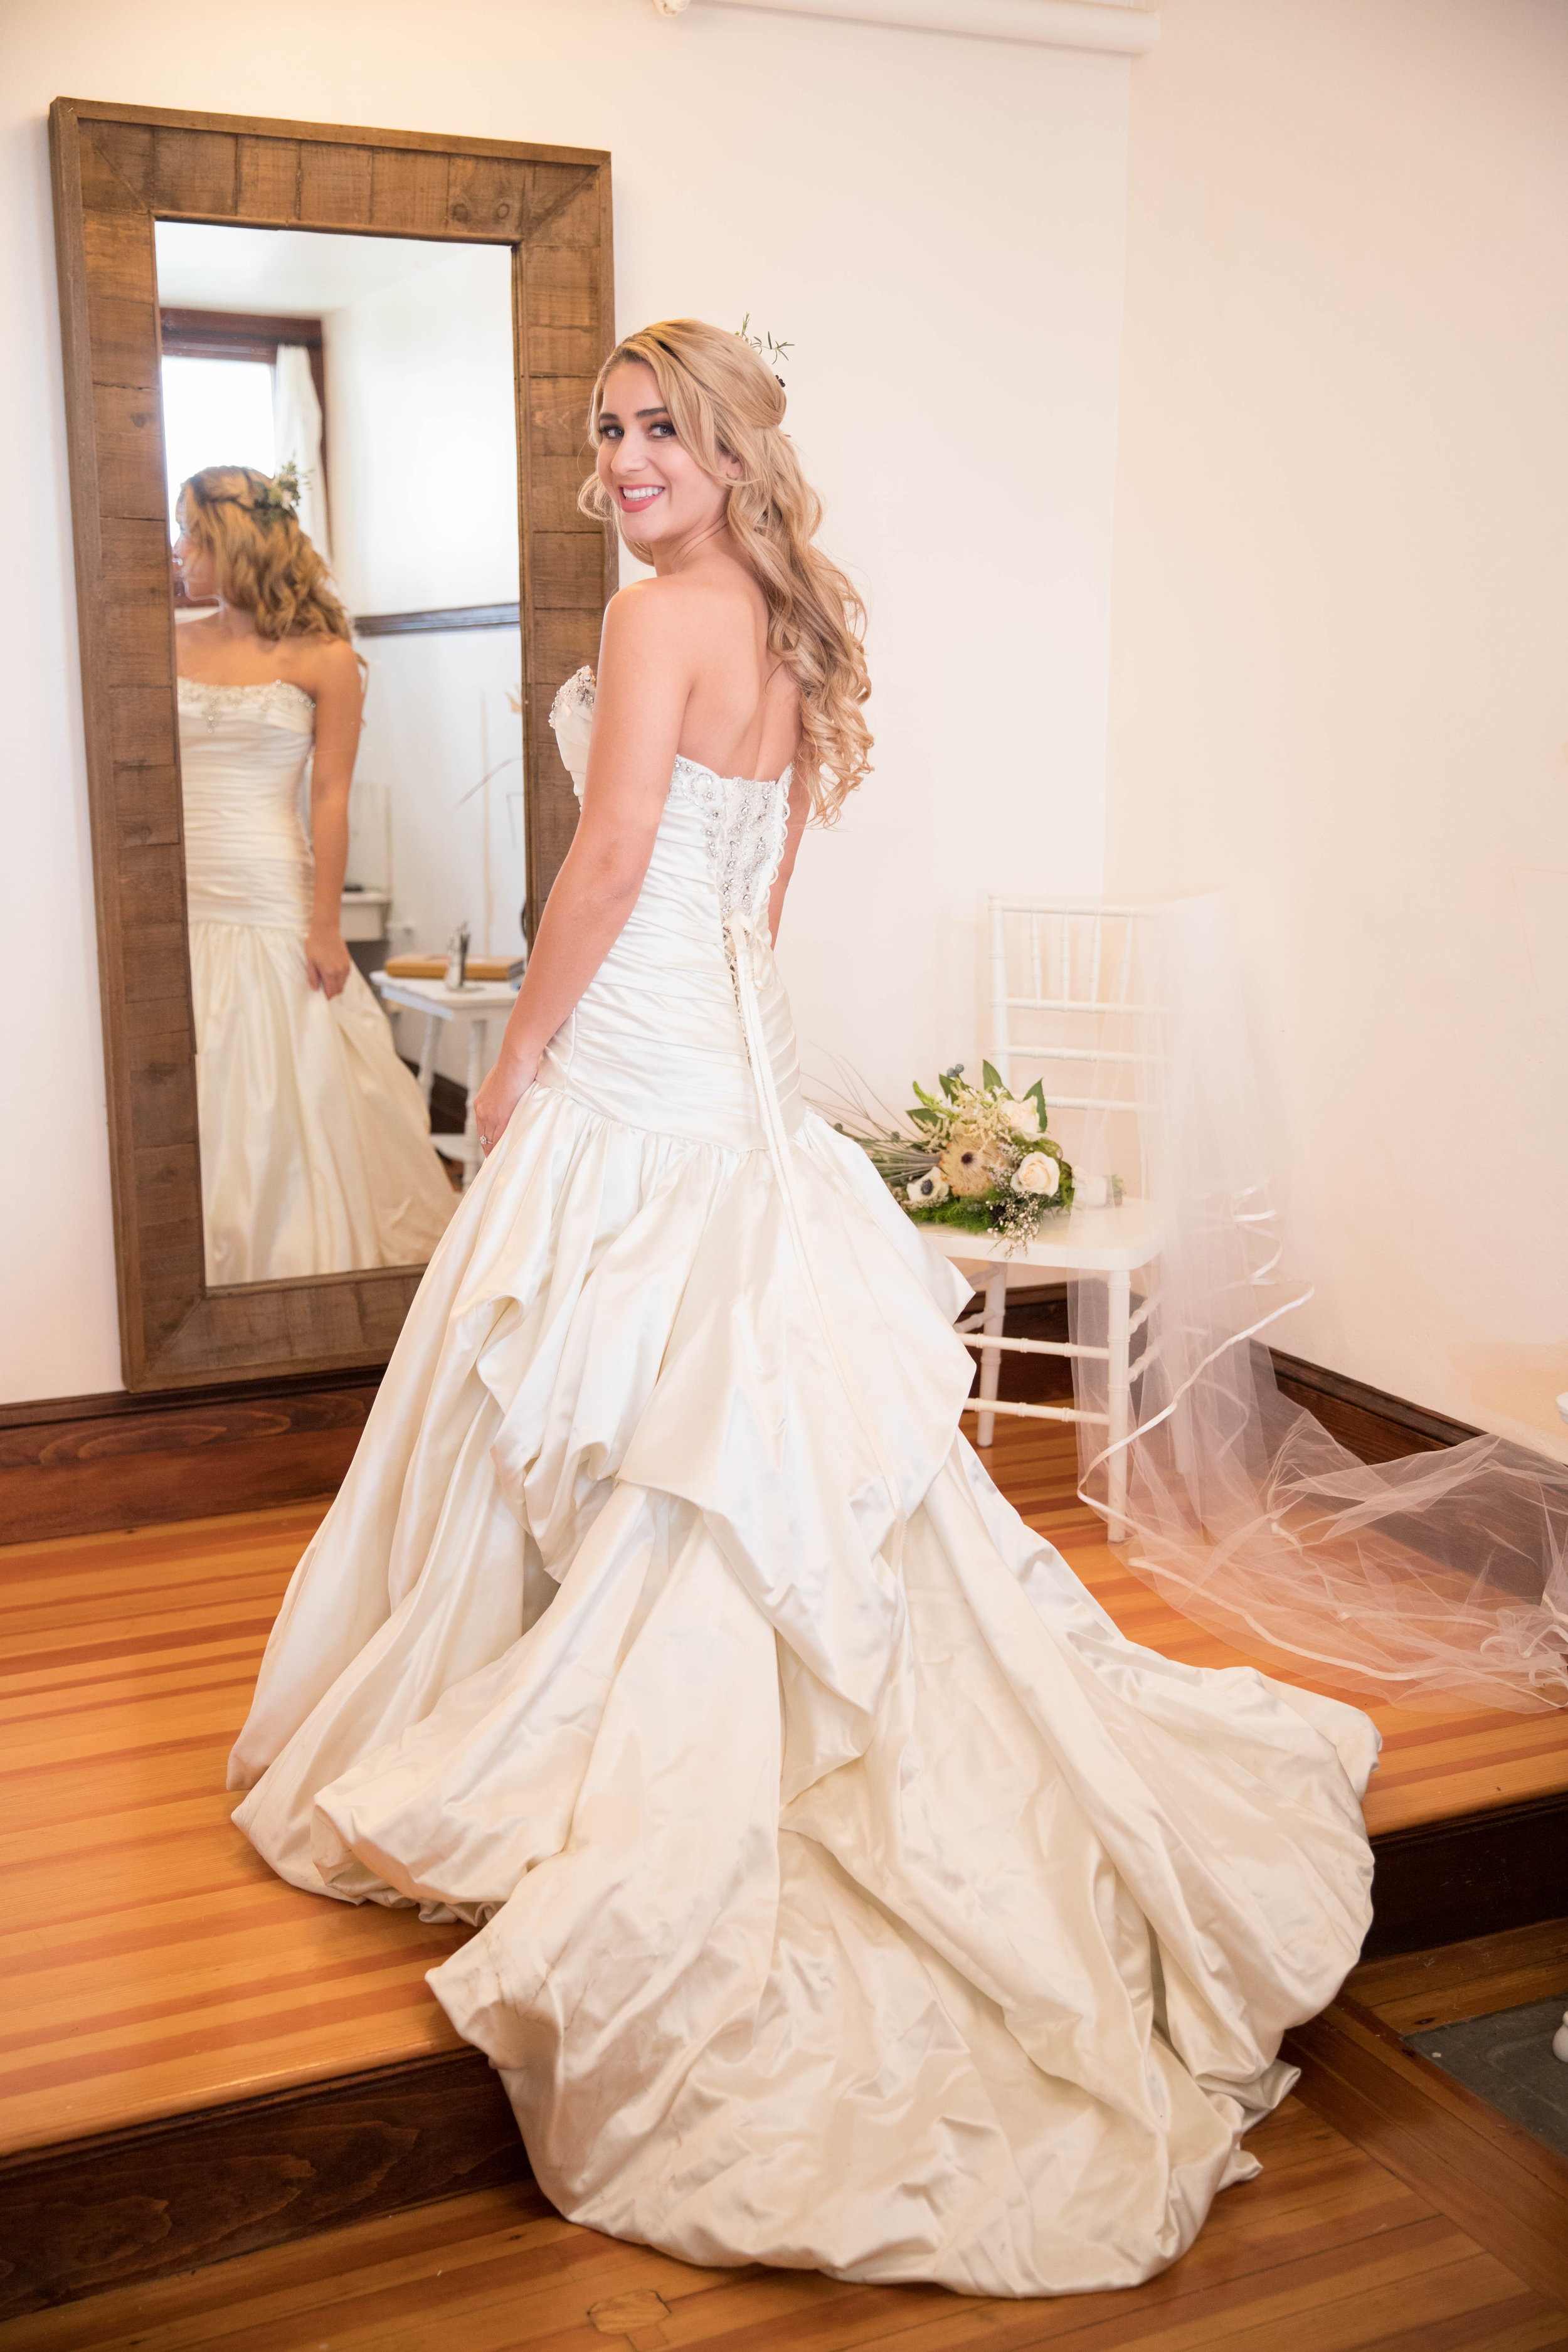 wedding budget planning wedding dress.jpg